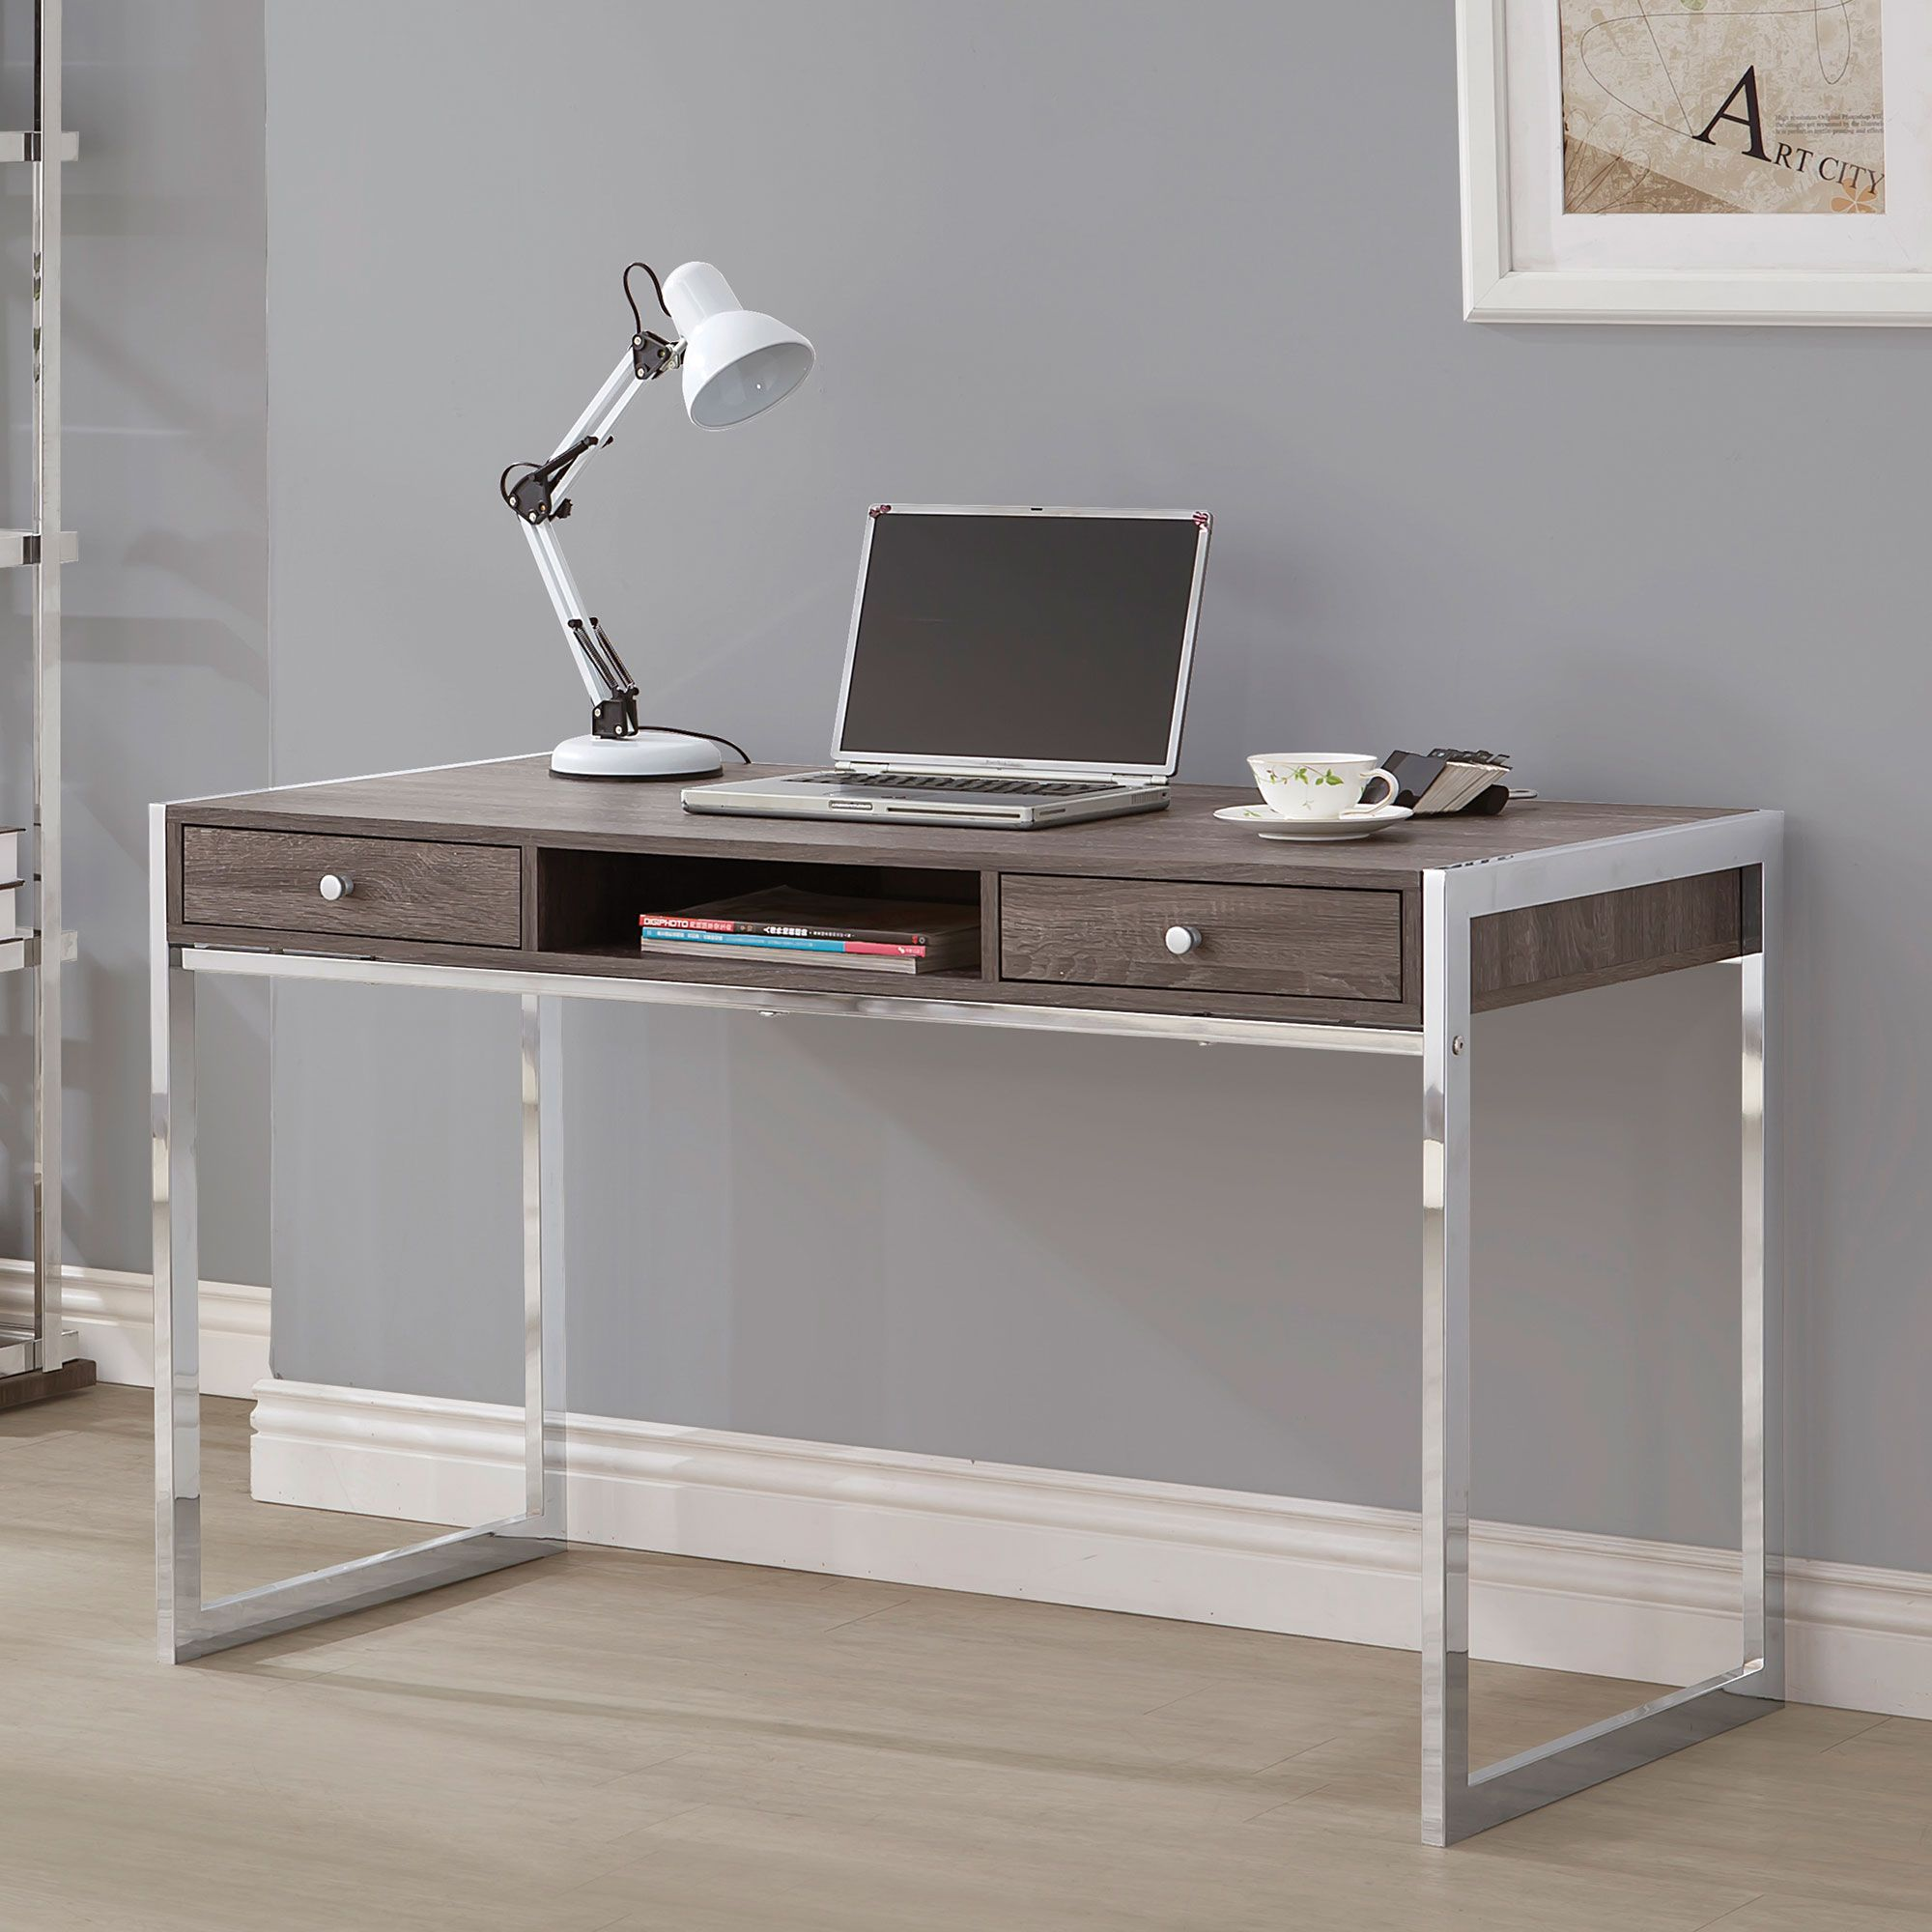 Coaster 801221 Weathered Grey And Chrome Writing Desk Computer Desks For Home Furniture Coaster Furniture